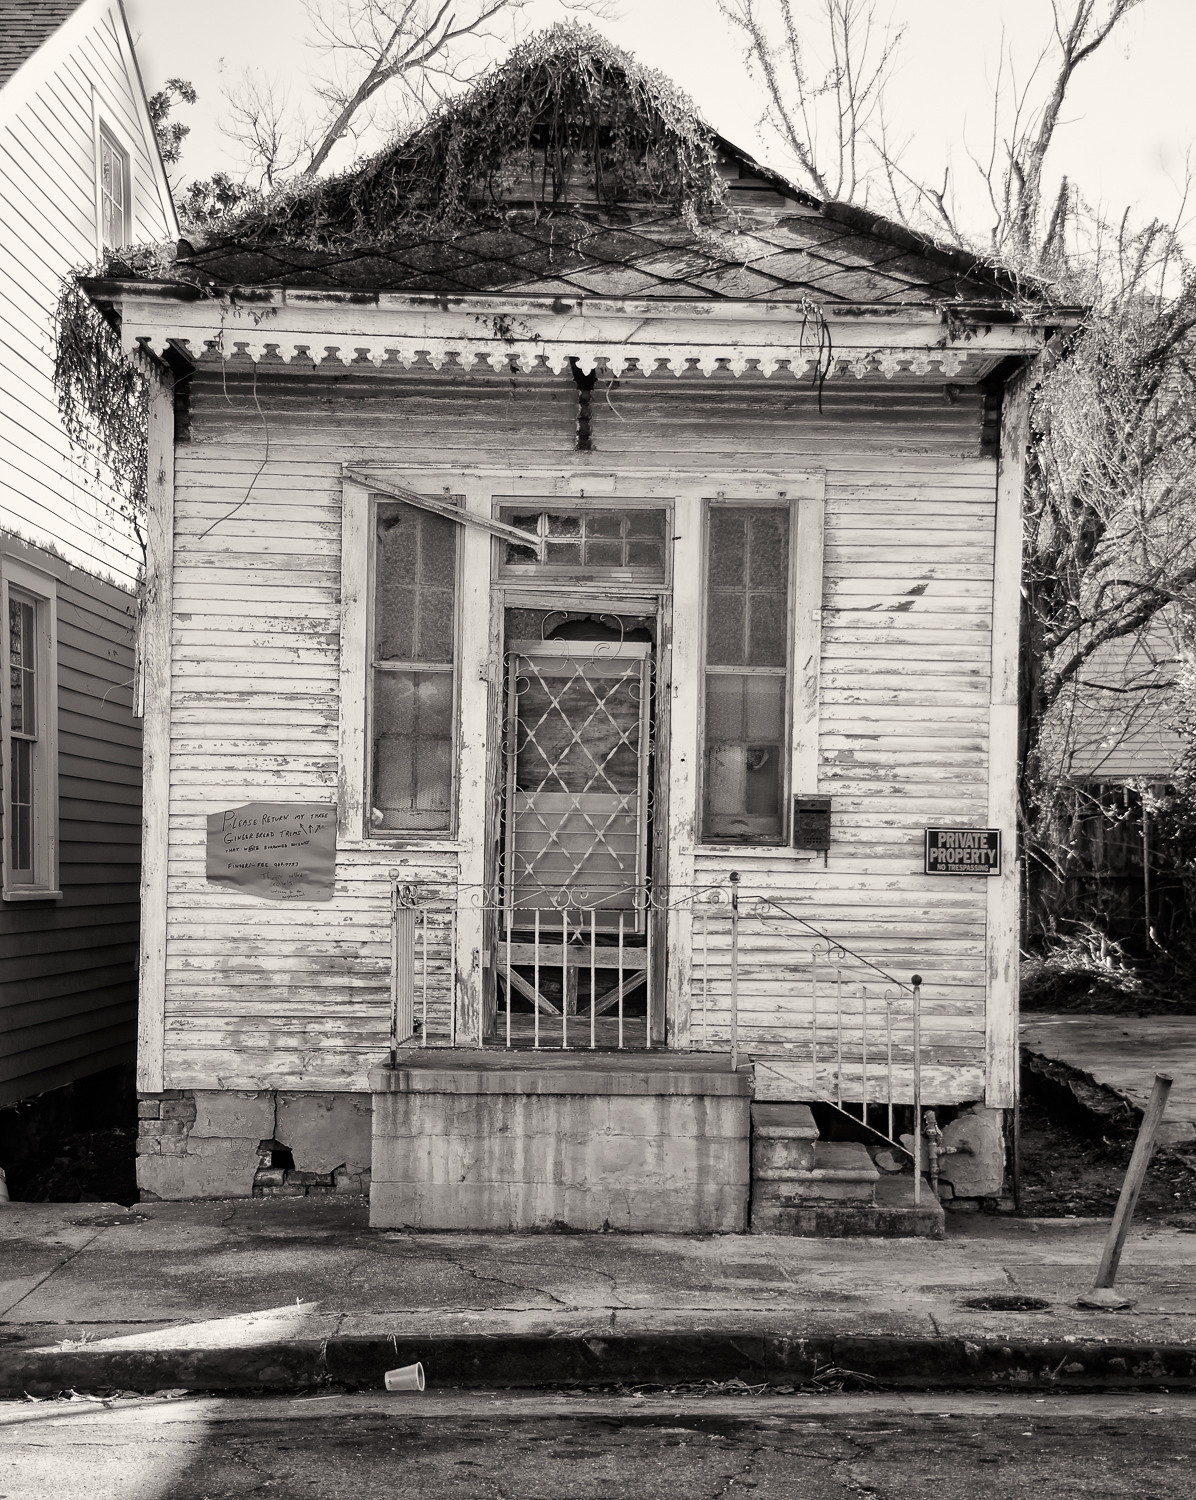 Abandoned House in Marigny, New Orleans, 2013